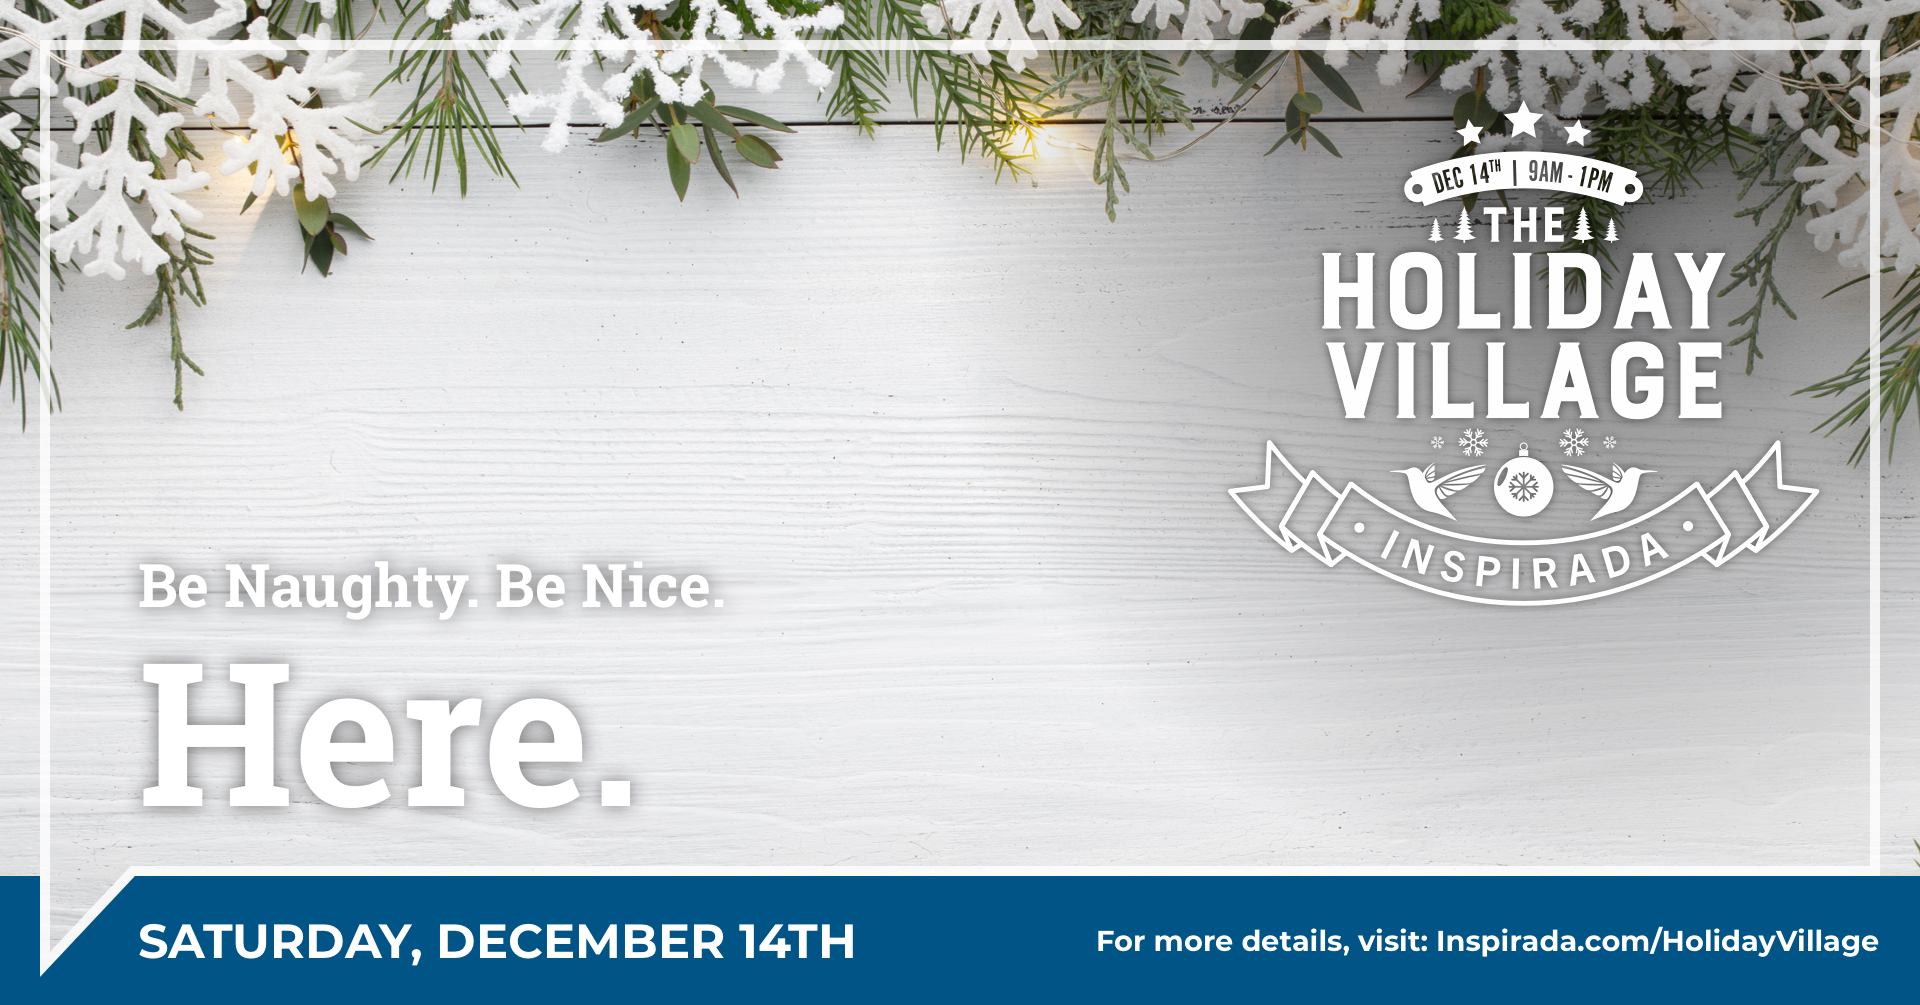 Holliday Village event flyer